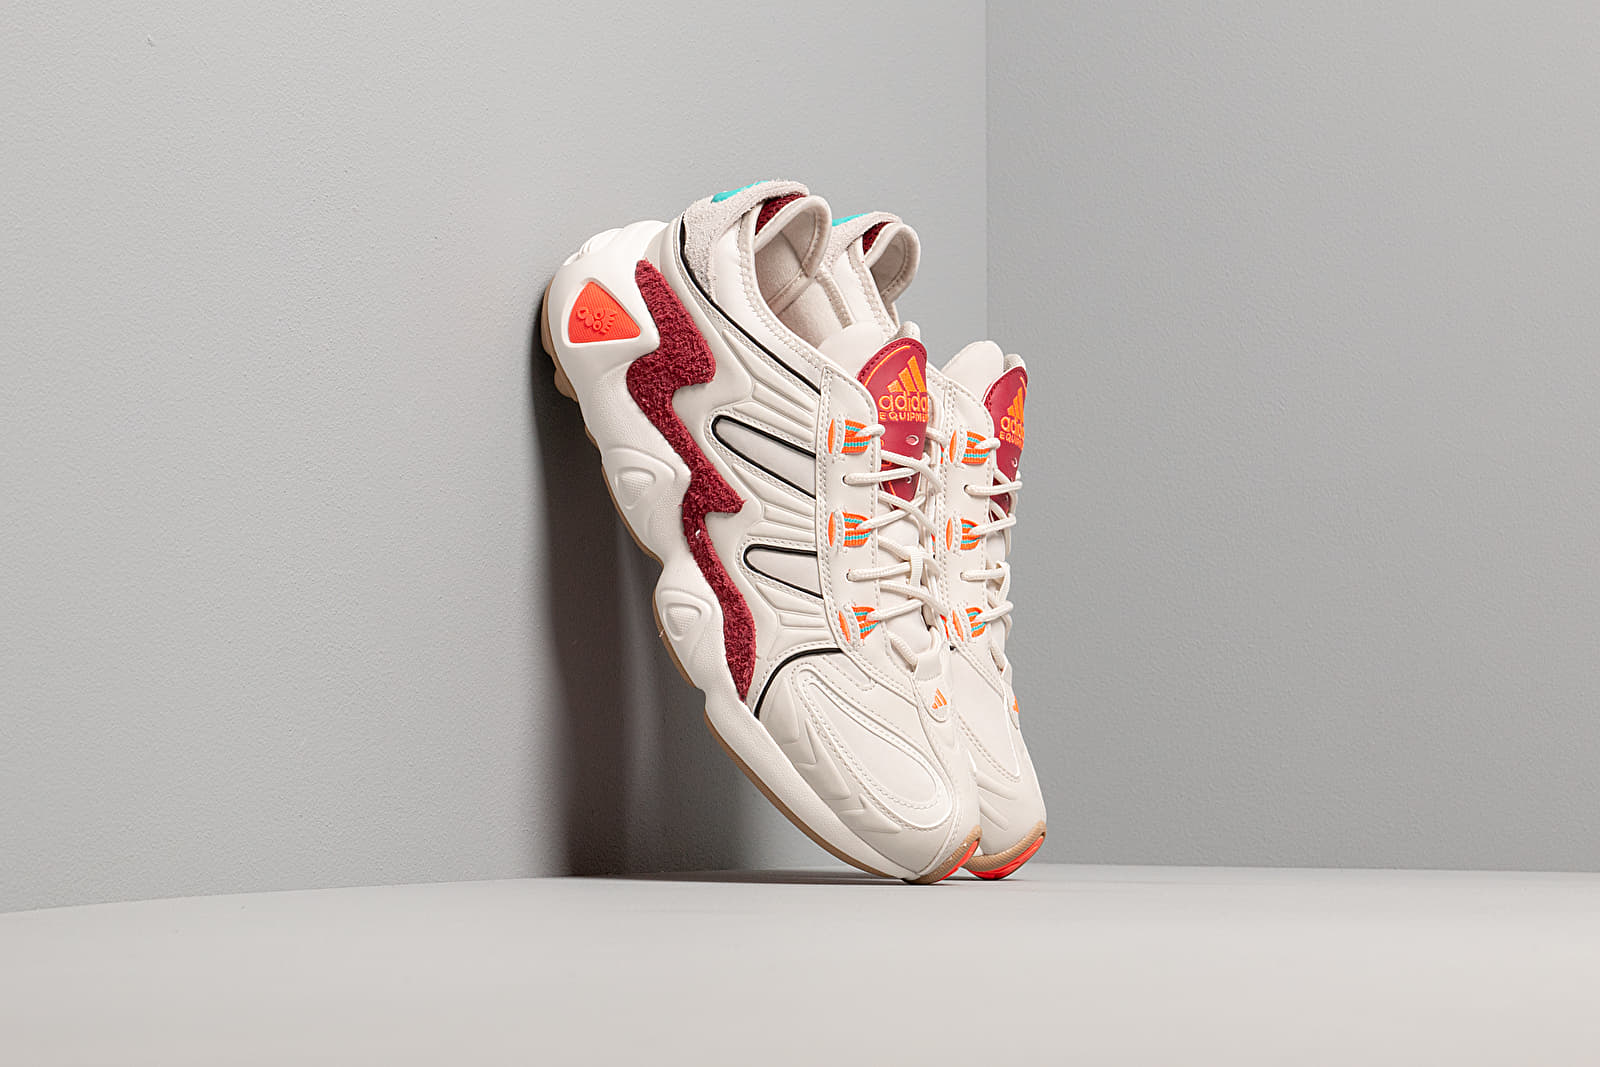 Ανδρικά παπούτσια adidas FYW S-97 Raw White/ Raw White/ Solar Red